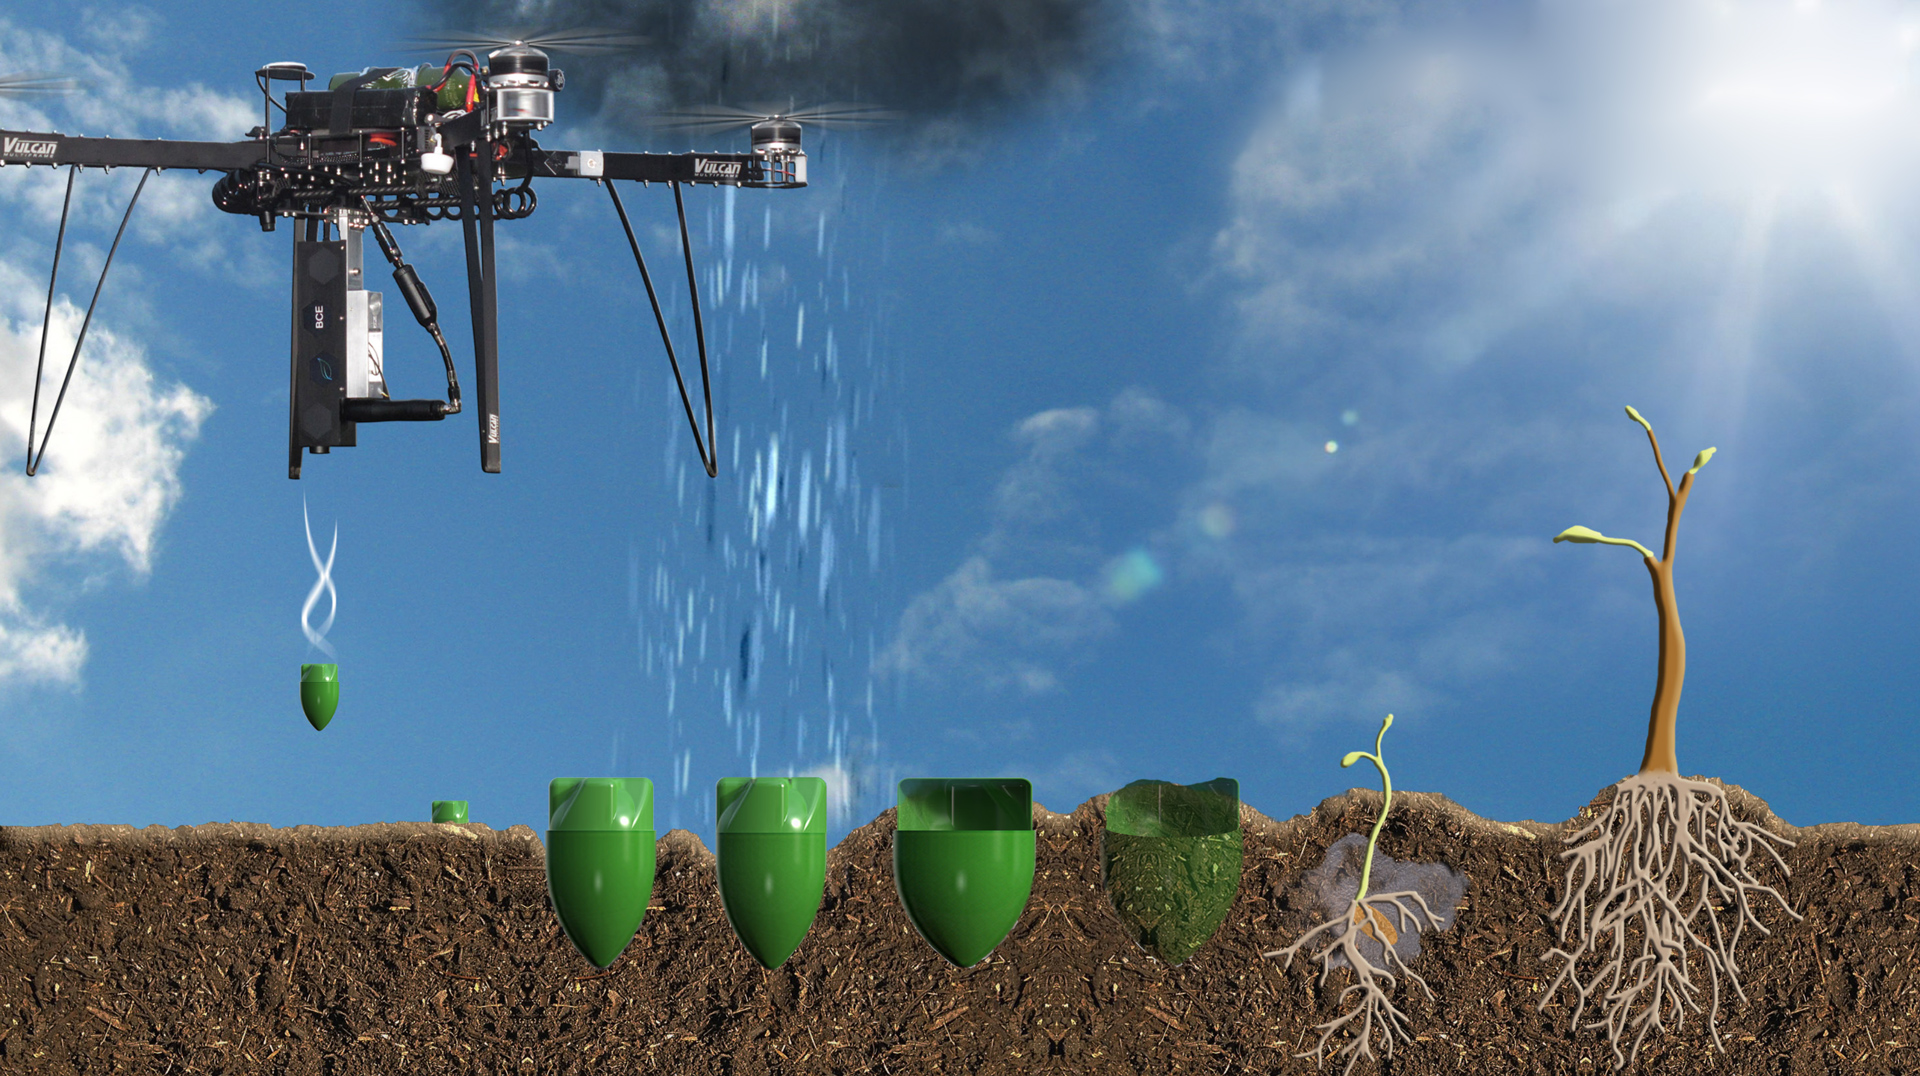 The BCE system uses satellite and drone-collected data - image courtesy of BCE.